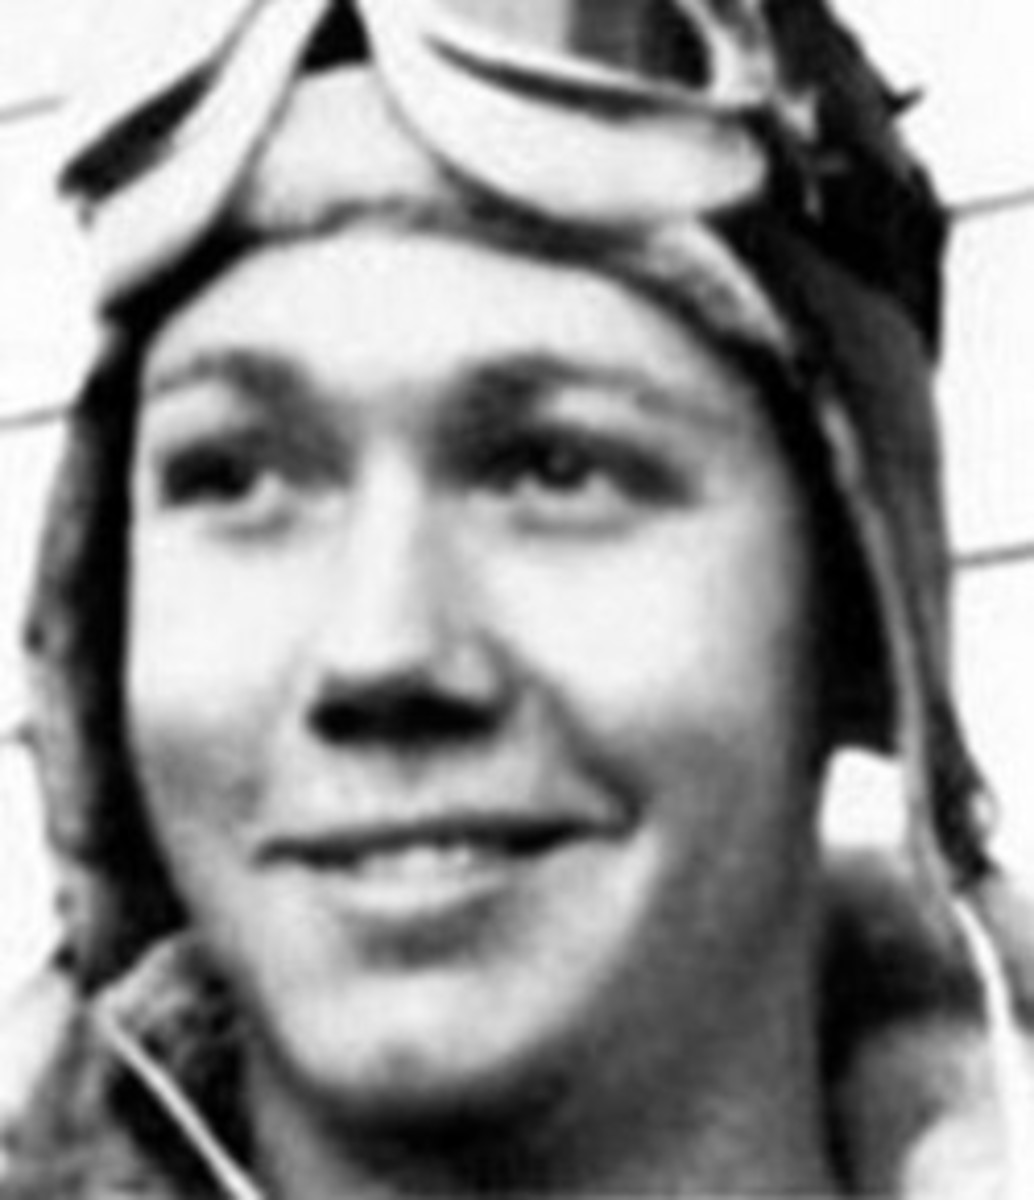 Owen J. Baggett: The Man Who Shot Down an Enemy Aircraft With a Pistol